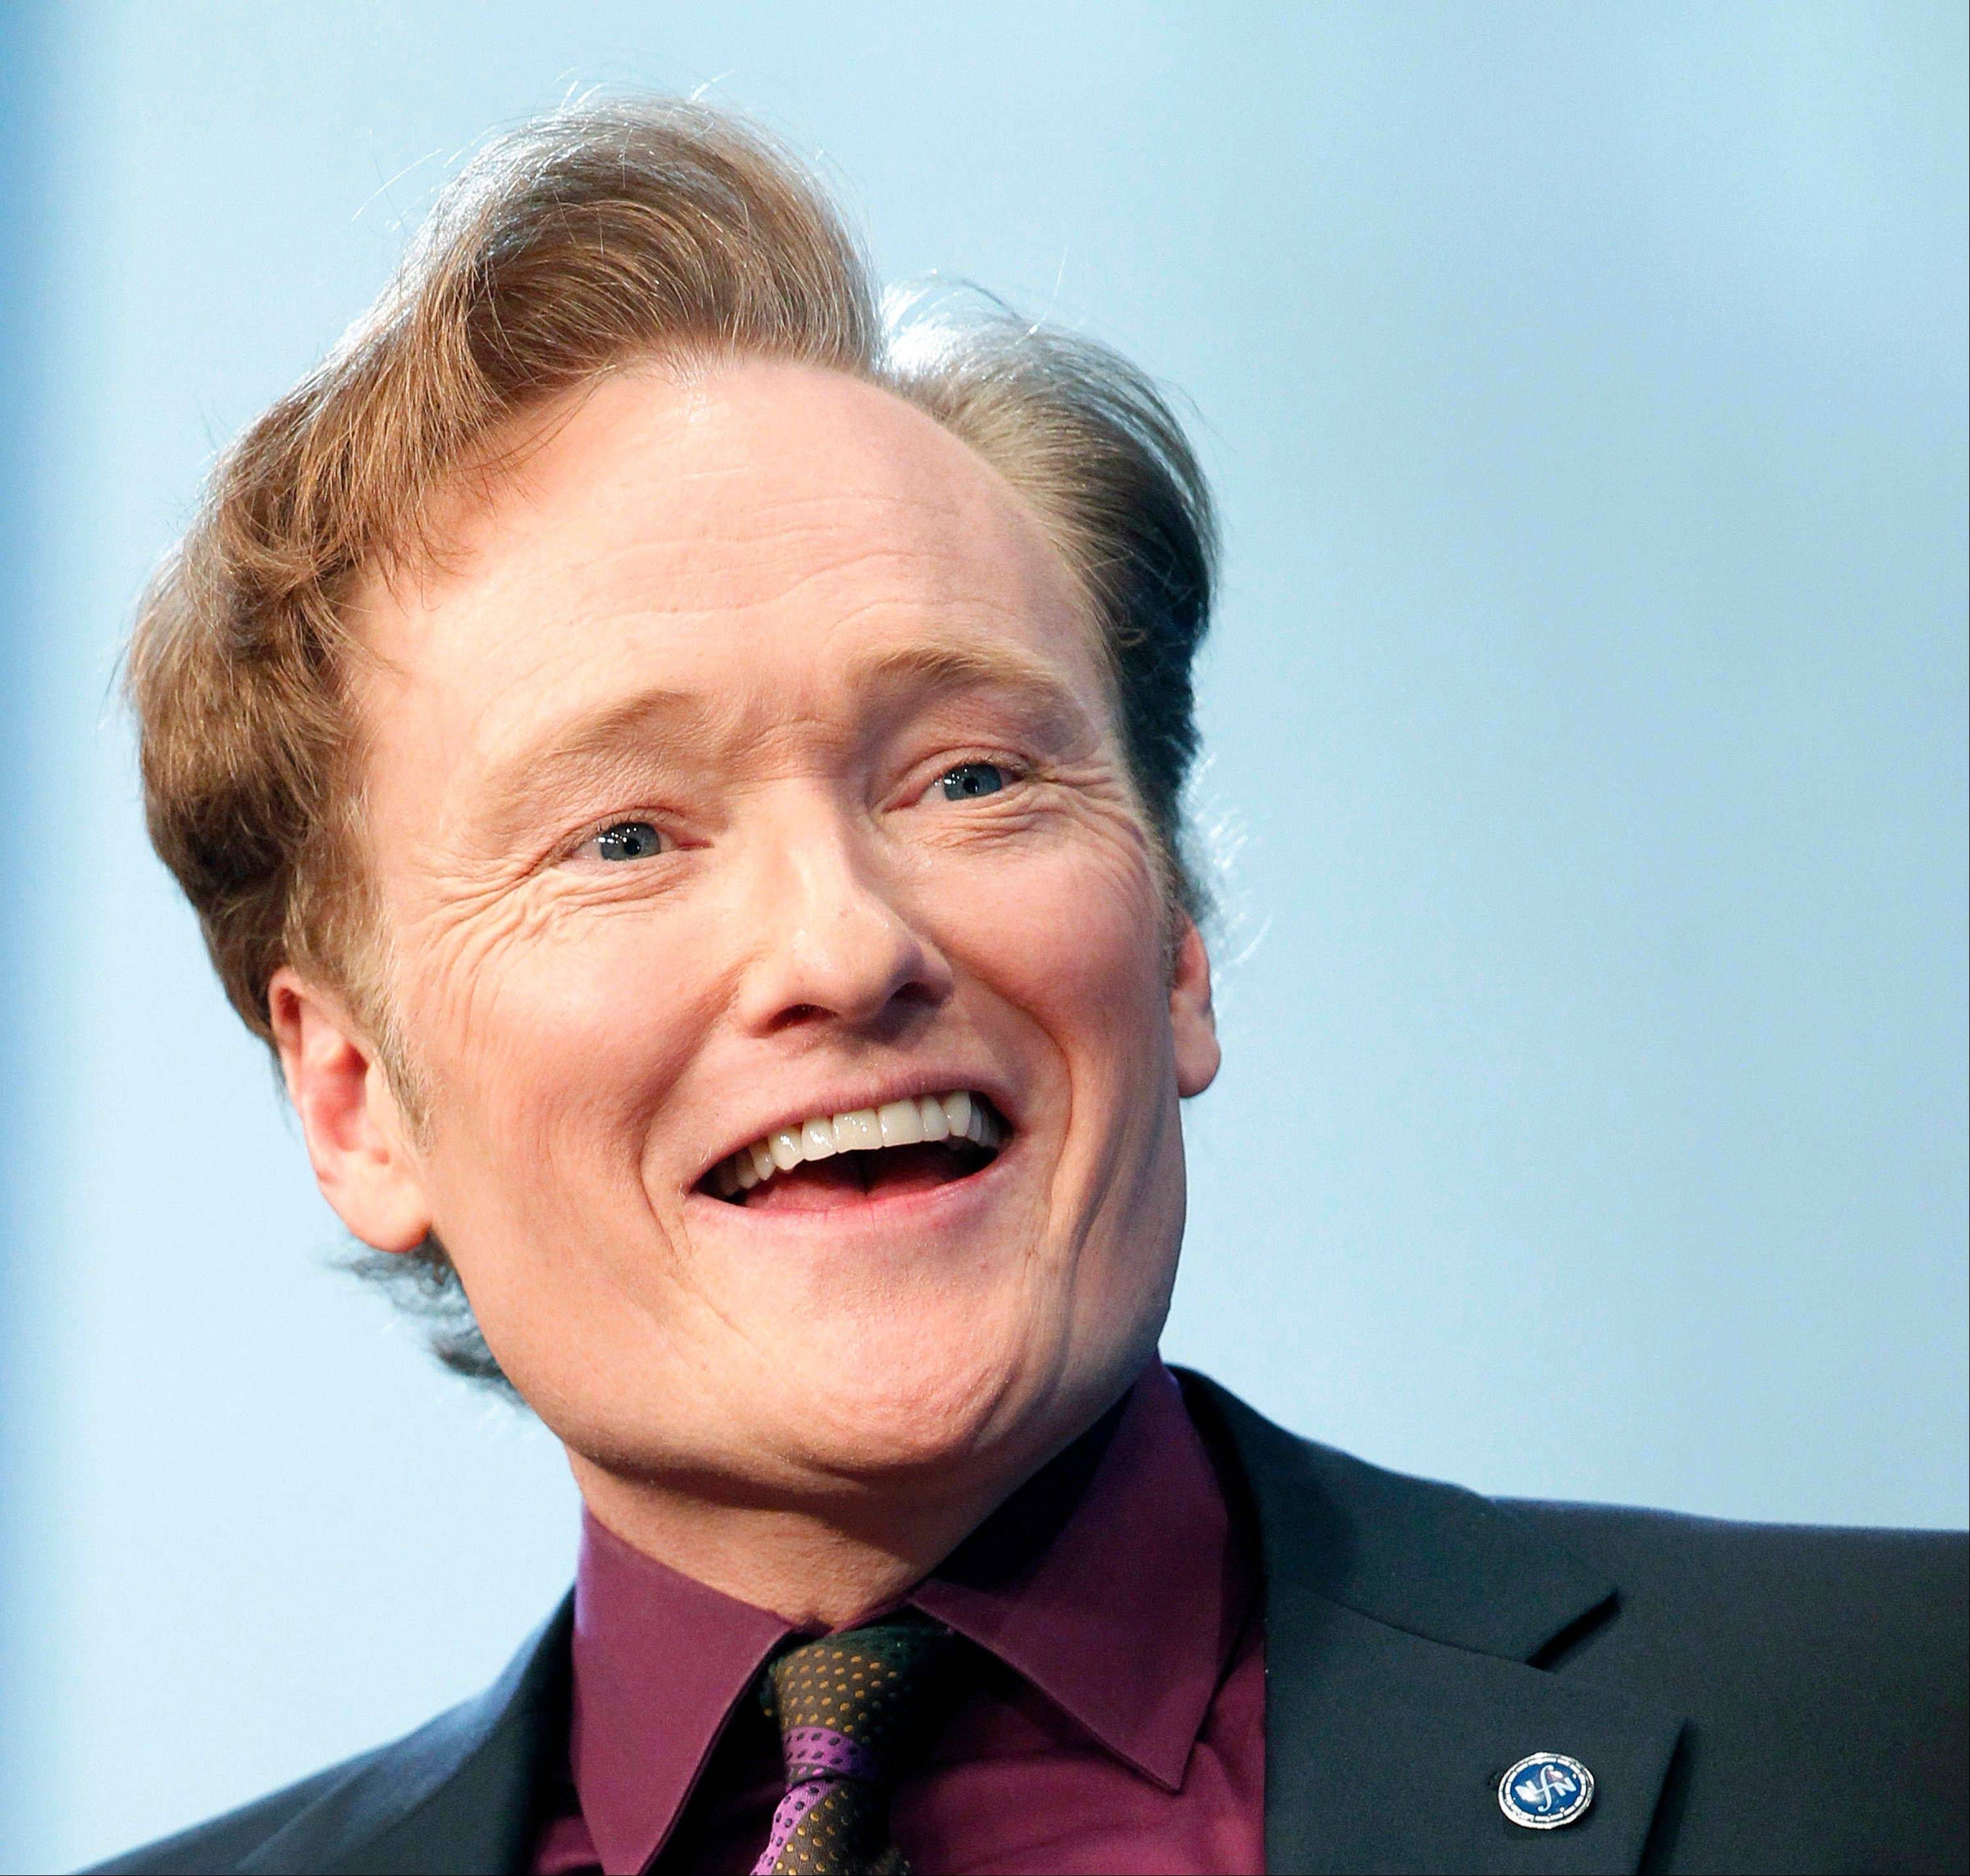 Comedian Conan O'Brien has been chosen by the White House Correspondents' Association as the featured act for its annual dinner.